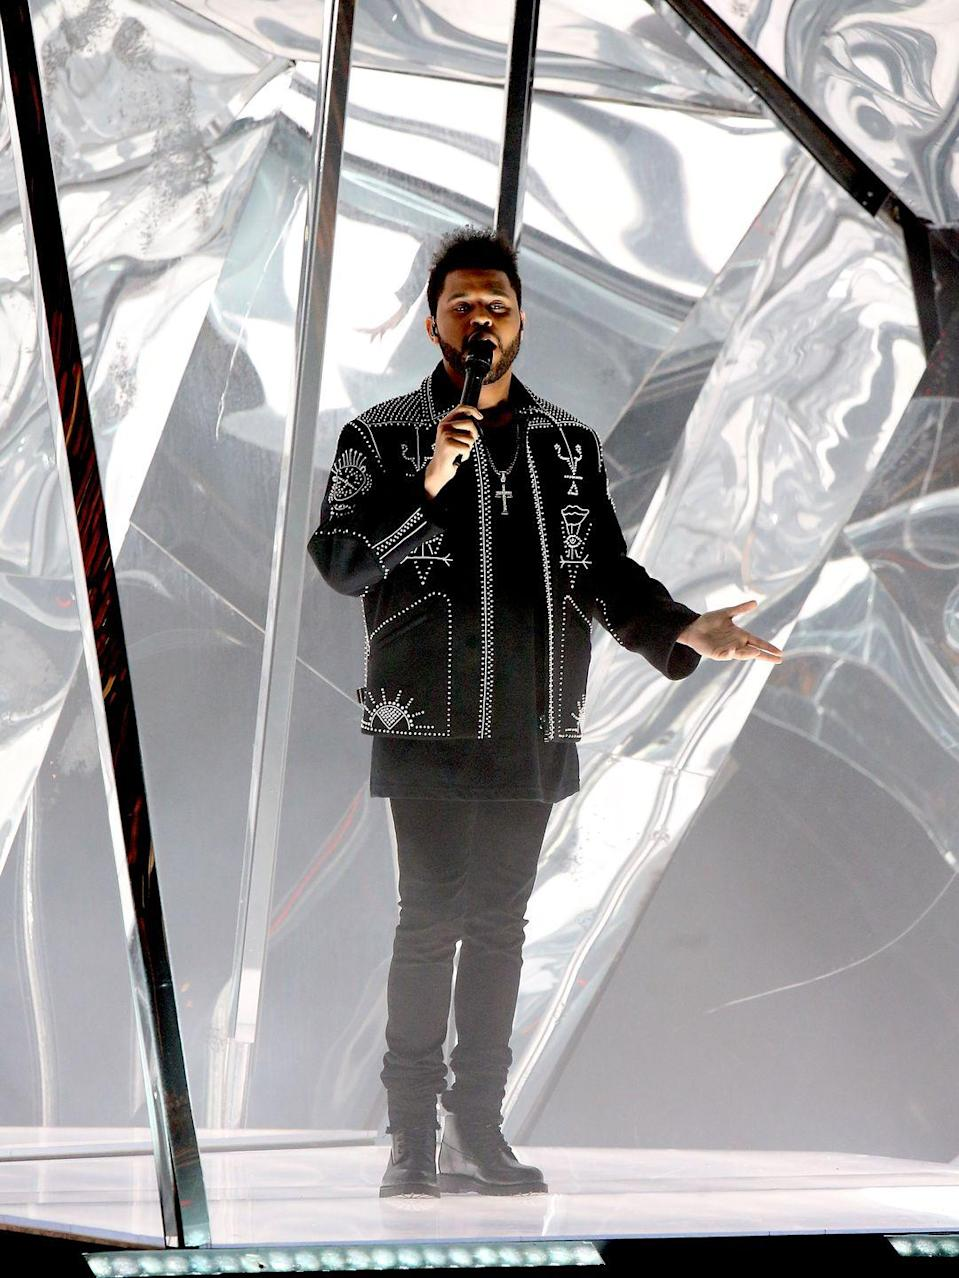 <p>Even performing live, Tesfaye rarely strays from what serves him best. Here he's snapped at the AMAs in an intricately detailed cropped jacket layered over a longer tee and stacked jeans, all in black. In other words, business as usual. </p>